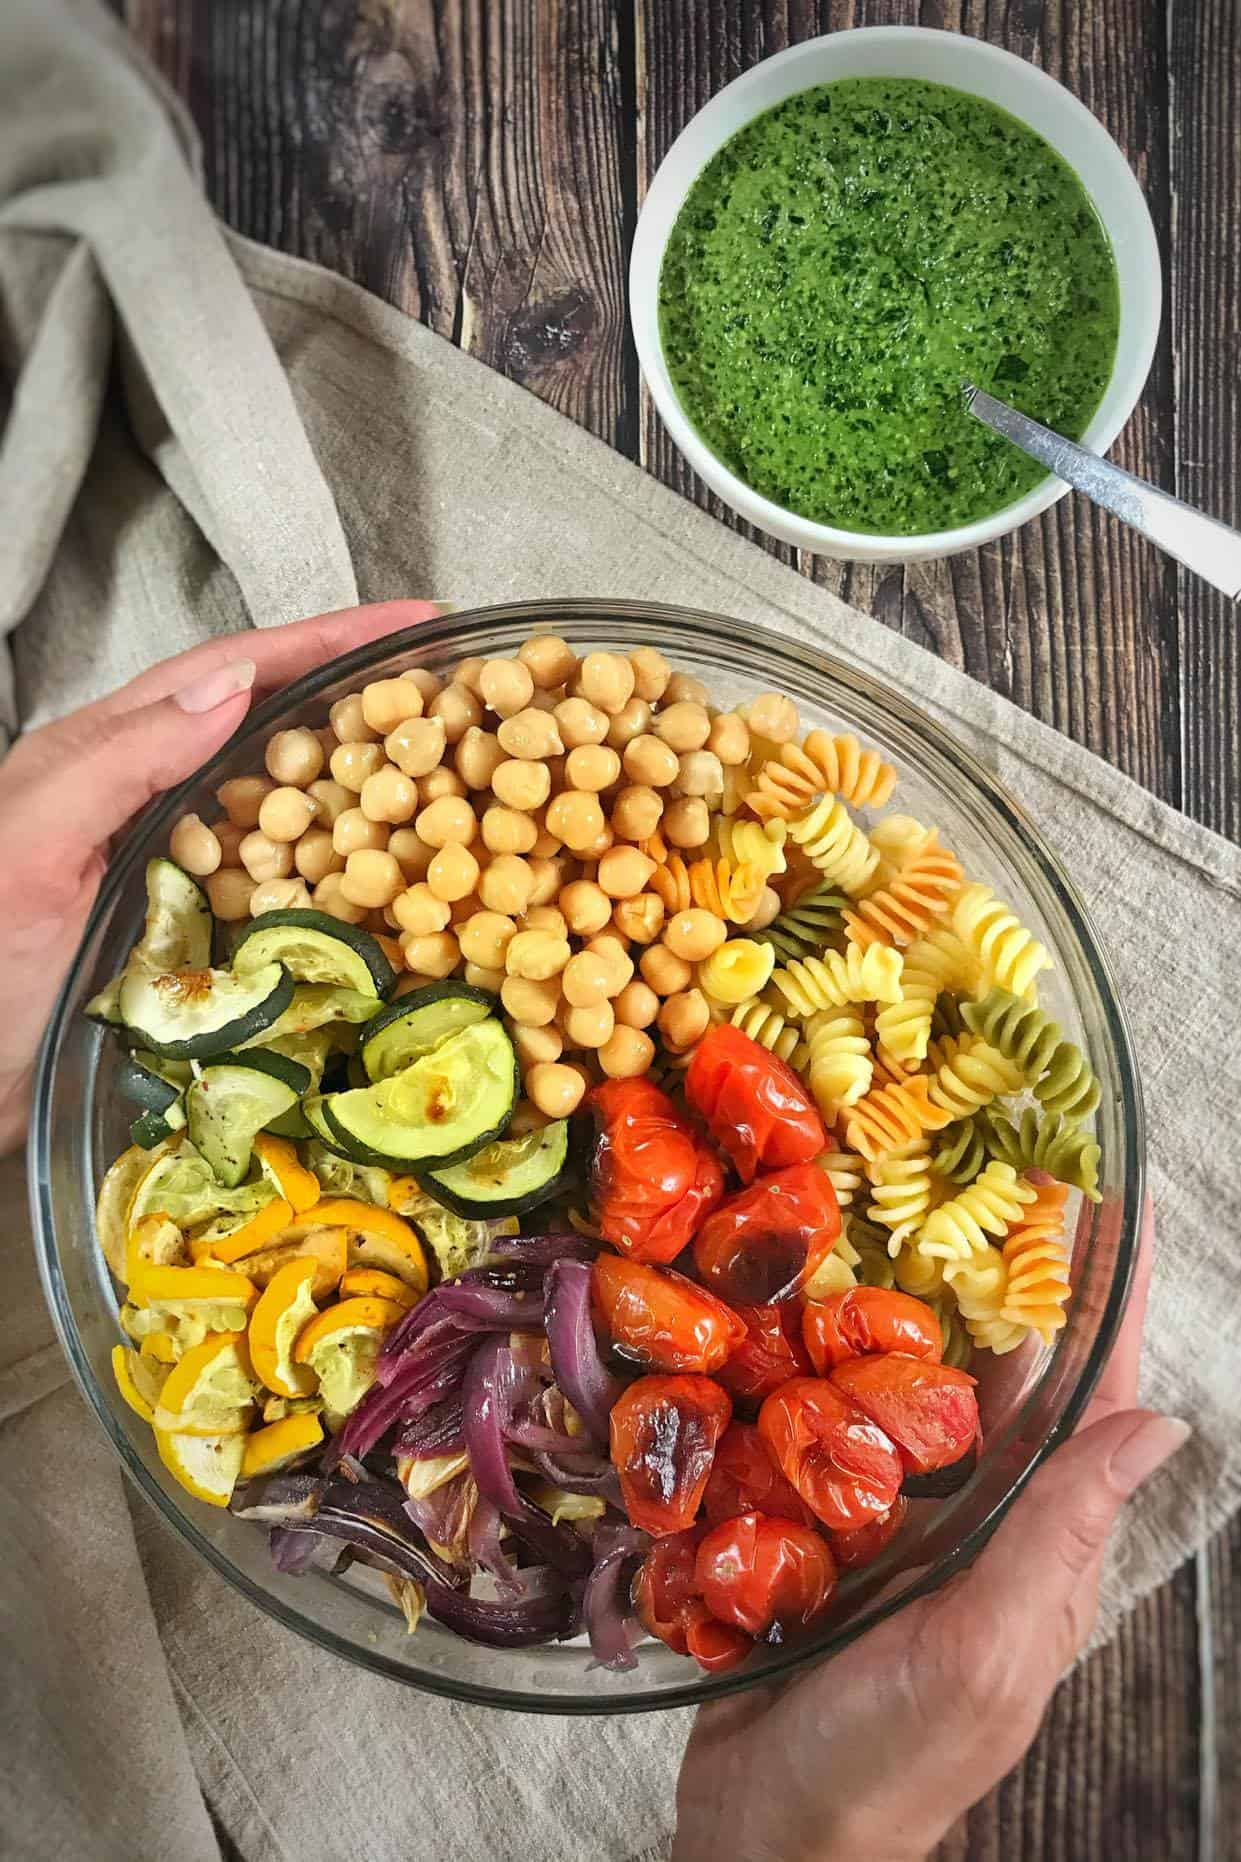 Vegan Pesto Pasta Salad with Roasted Veggies and Chickpeas (Oil-Free!)